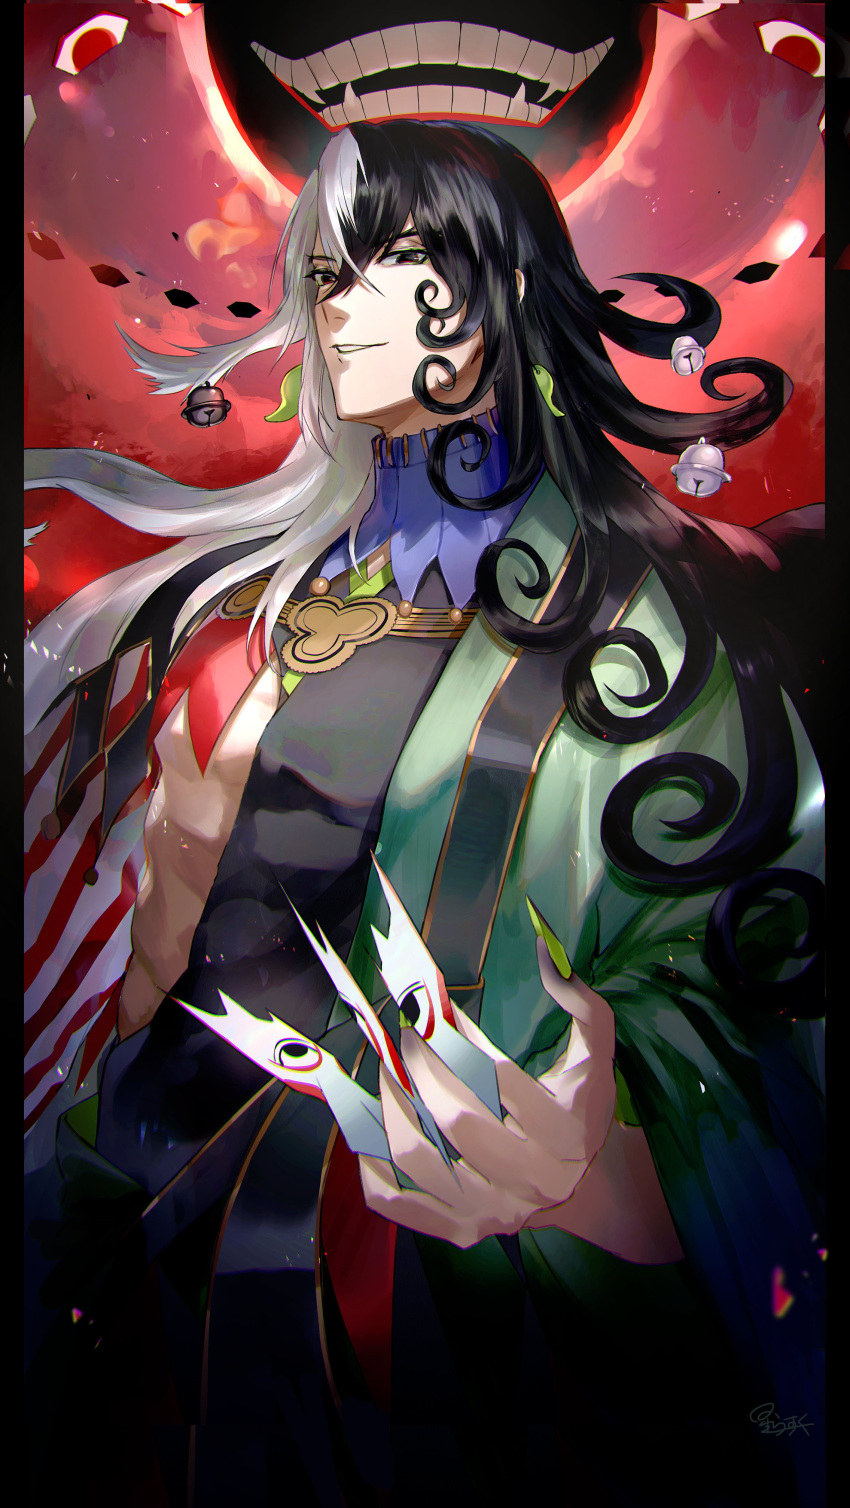 1boy abs absurdres akimitsu-dono ashiya_douman_(fate) asymmetrical_clothes asymmetrical_hair bell black_eyes black_hair covered_abs cowboy_shot curly_hair earrings extra_eyes fate/grand_order fate_(series) fingernails floating giant giant_monster green_eyeshadow green_kimono green_lipstick green_nails hair_bell hair_between_eyes hair_intakes hair_ornament highres hoshi_rasuku japanese_clothes jewelry kimono lipstick long_hair magatama magatama_earrings makeup male_focus monster multicolored_hair open_clothes open_kimono pectorals ribbed_sleeves sharp_fingernails shikigami solo toned toned_male two-tone_hair very_long_fingernails very_long_hair white_hair